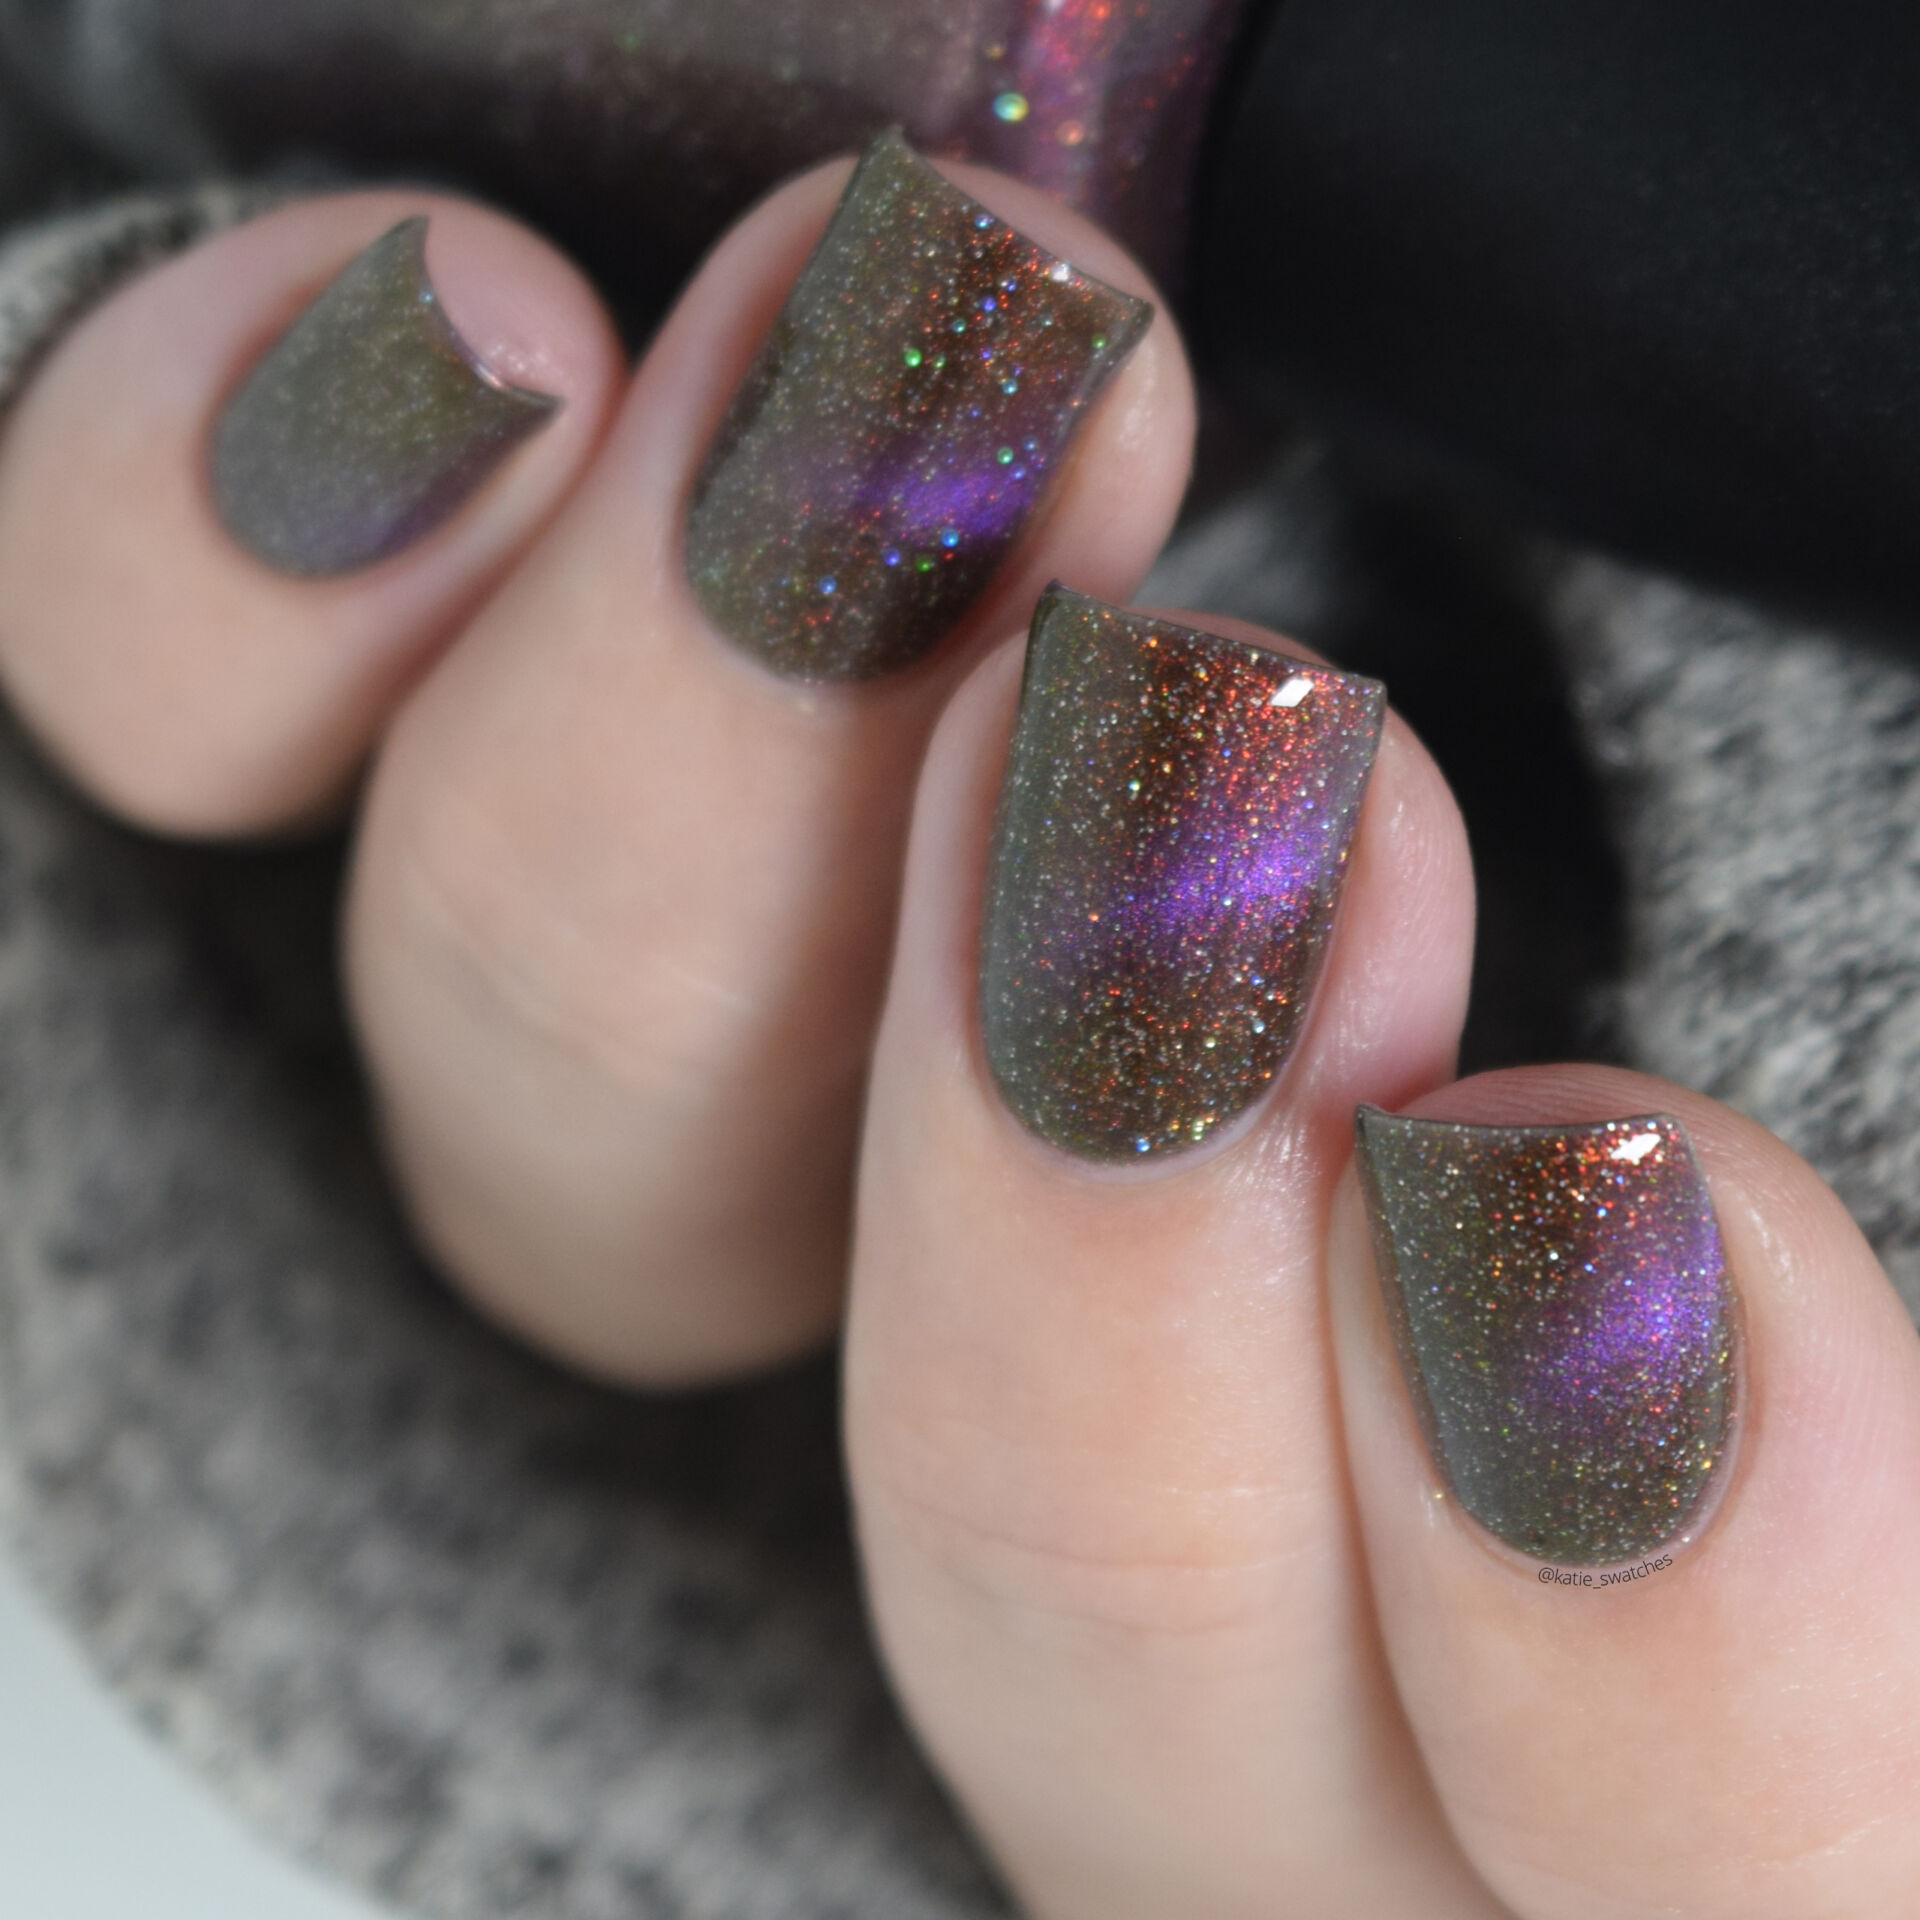 Treo Lacquer - Quantum Entanglement magnetic nail polish swatch - Polish Pickup July 2021 PPU Rewind